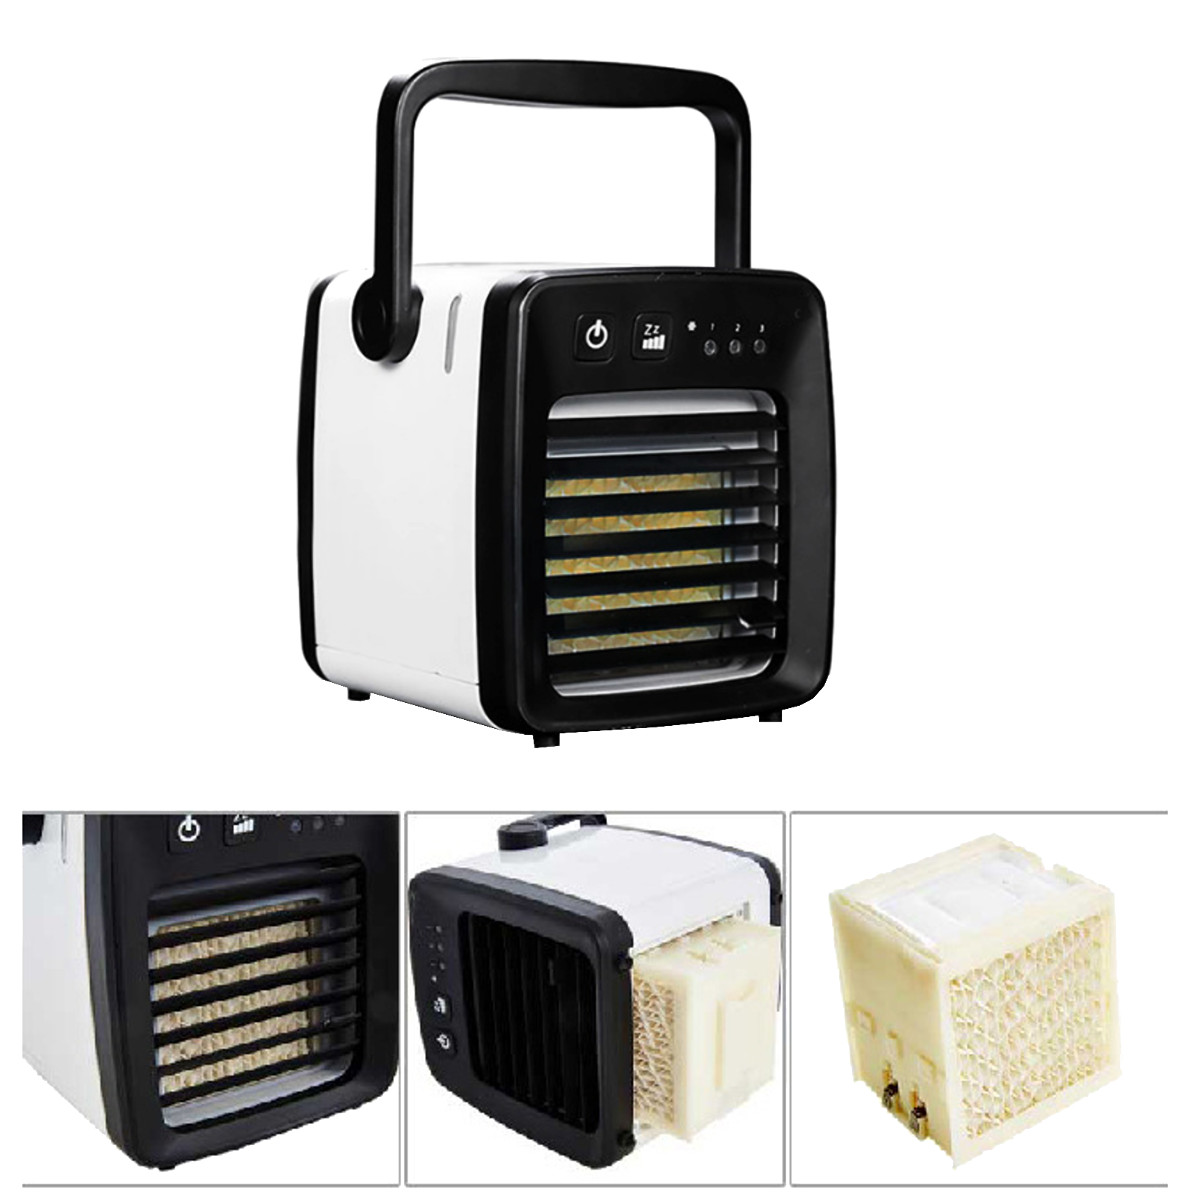 3 In 1 Personal 3 Speed Air-cooler Air Conditioner Cooling Fan Evaporative Humidifier Purification